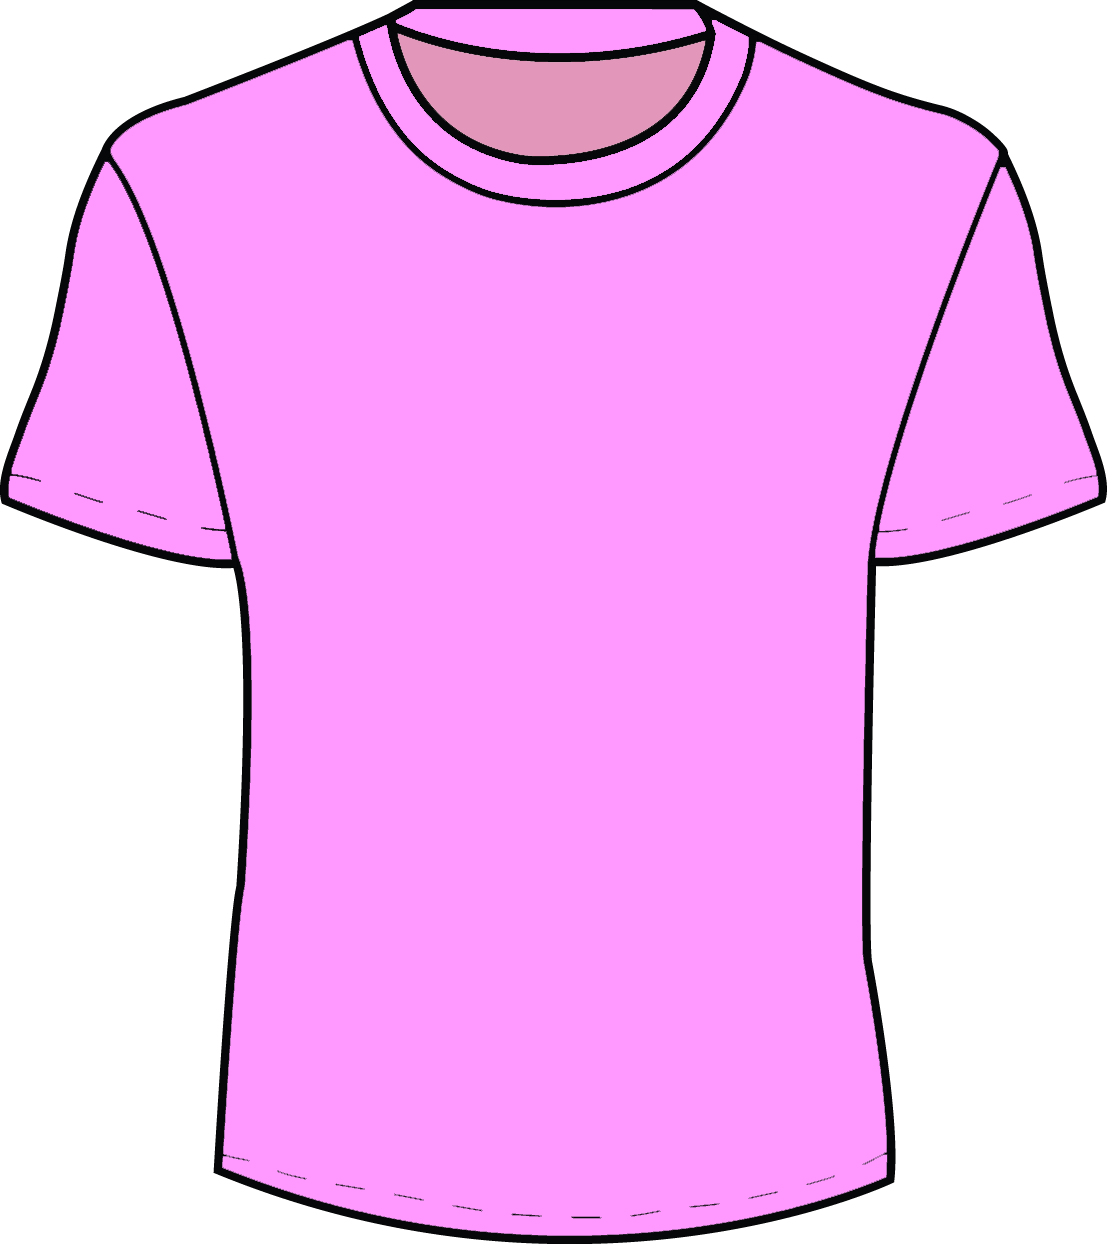 T shirt template clipart clipart suggest for Pink t shirt template